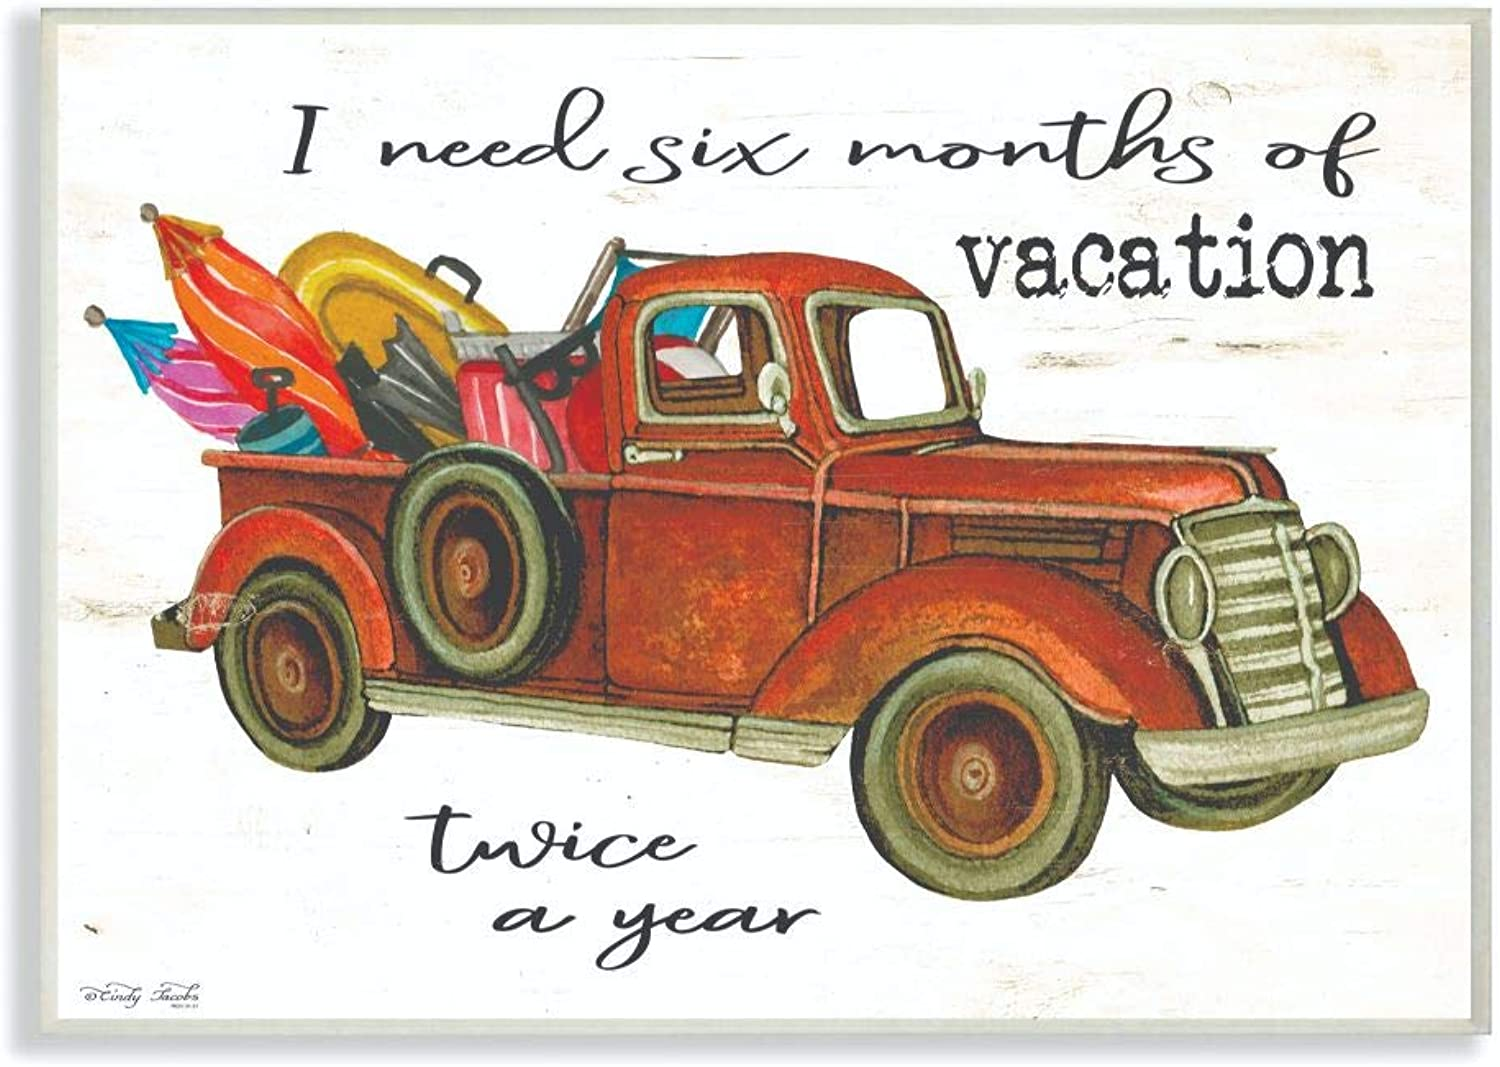 The Stupell Home Decor Collection hwp-295_wd_12x18 Six Months of Vacation Twice A Year Red Truck Wall Plaque Art, 12 x 18